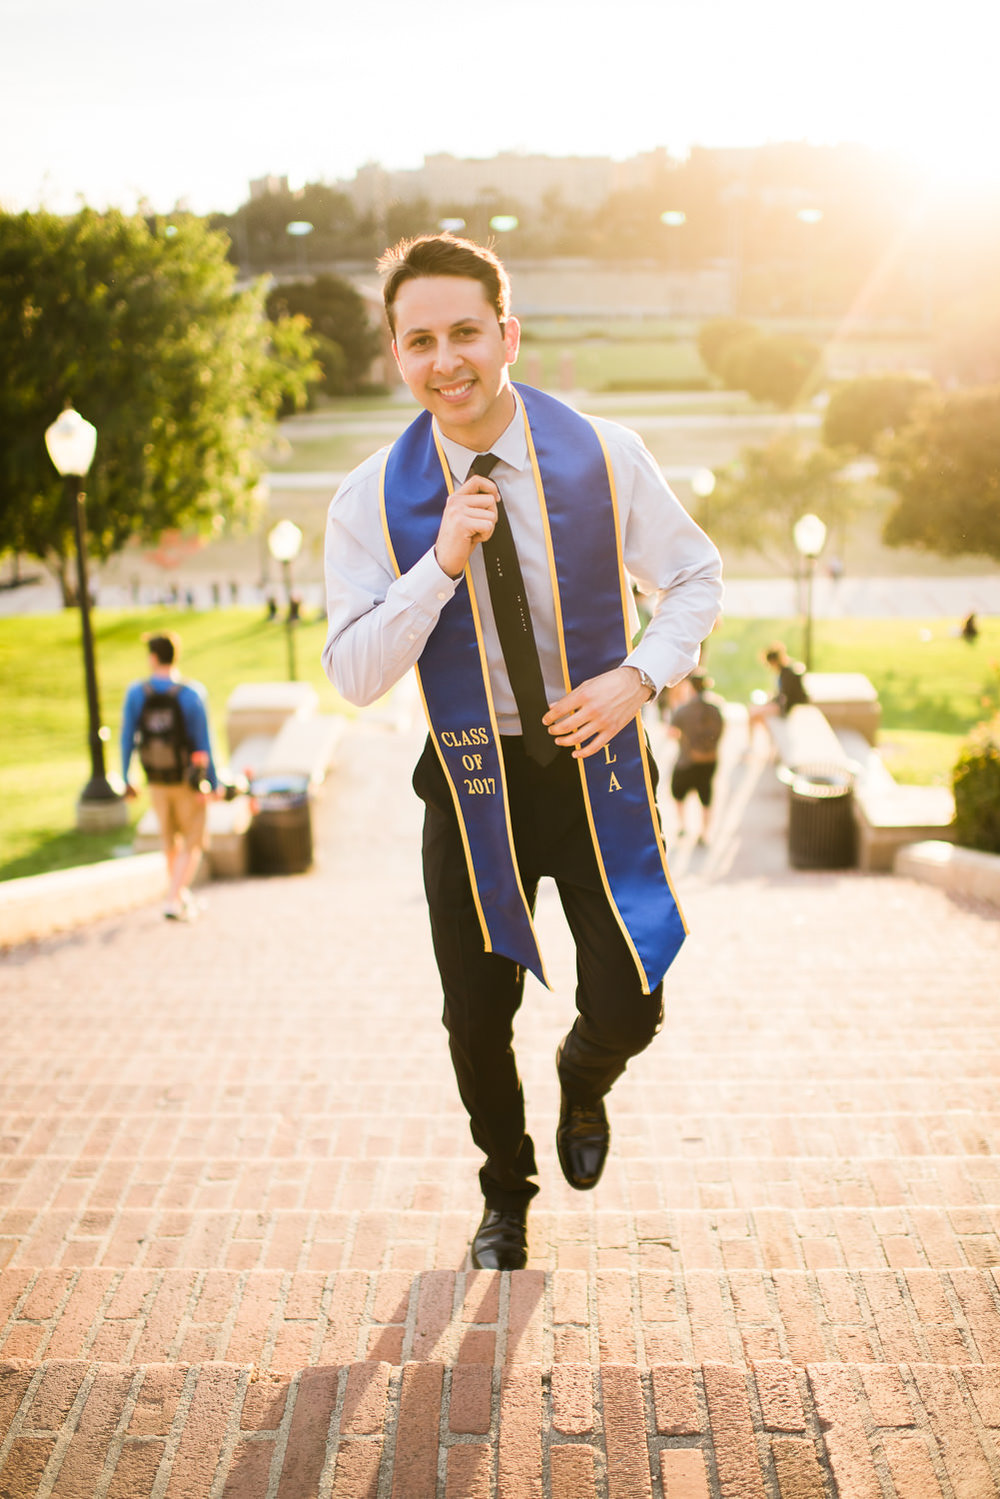 Senior walking up Janss Steps. Best graduation portrait photography, Los Angeles.